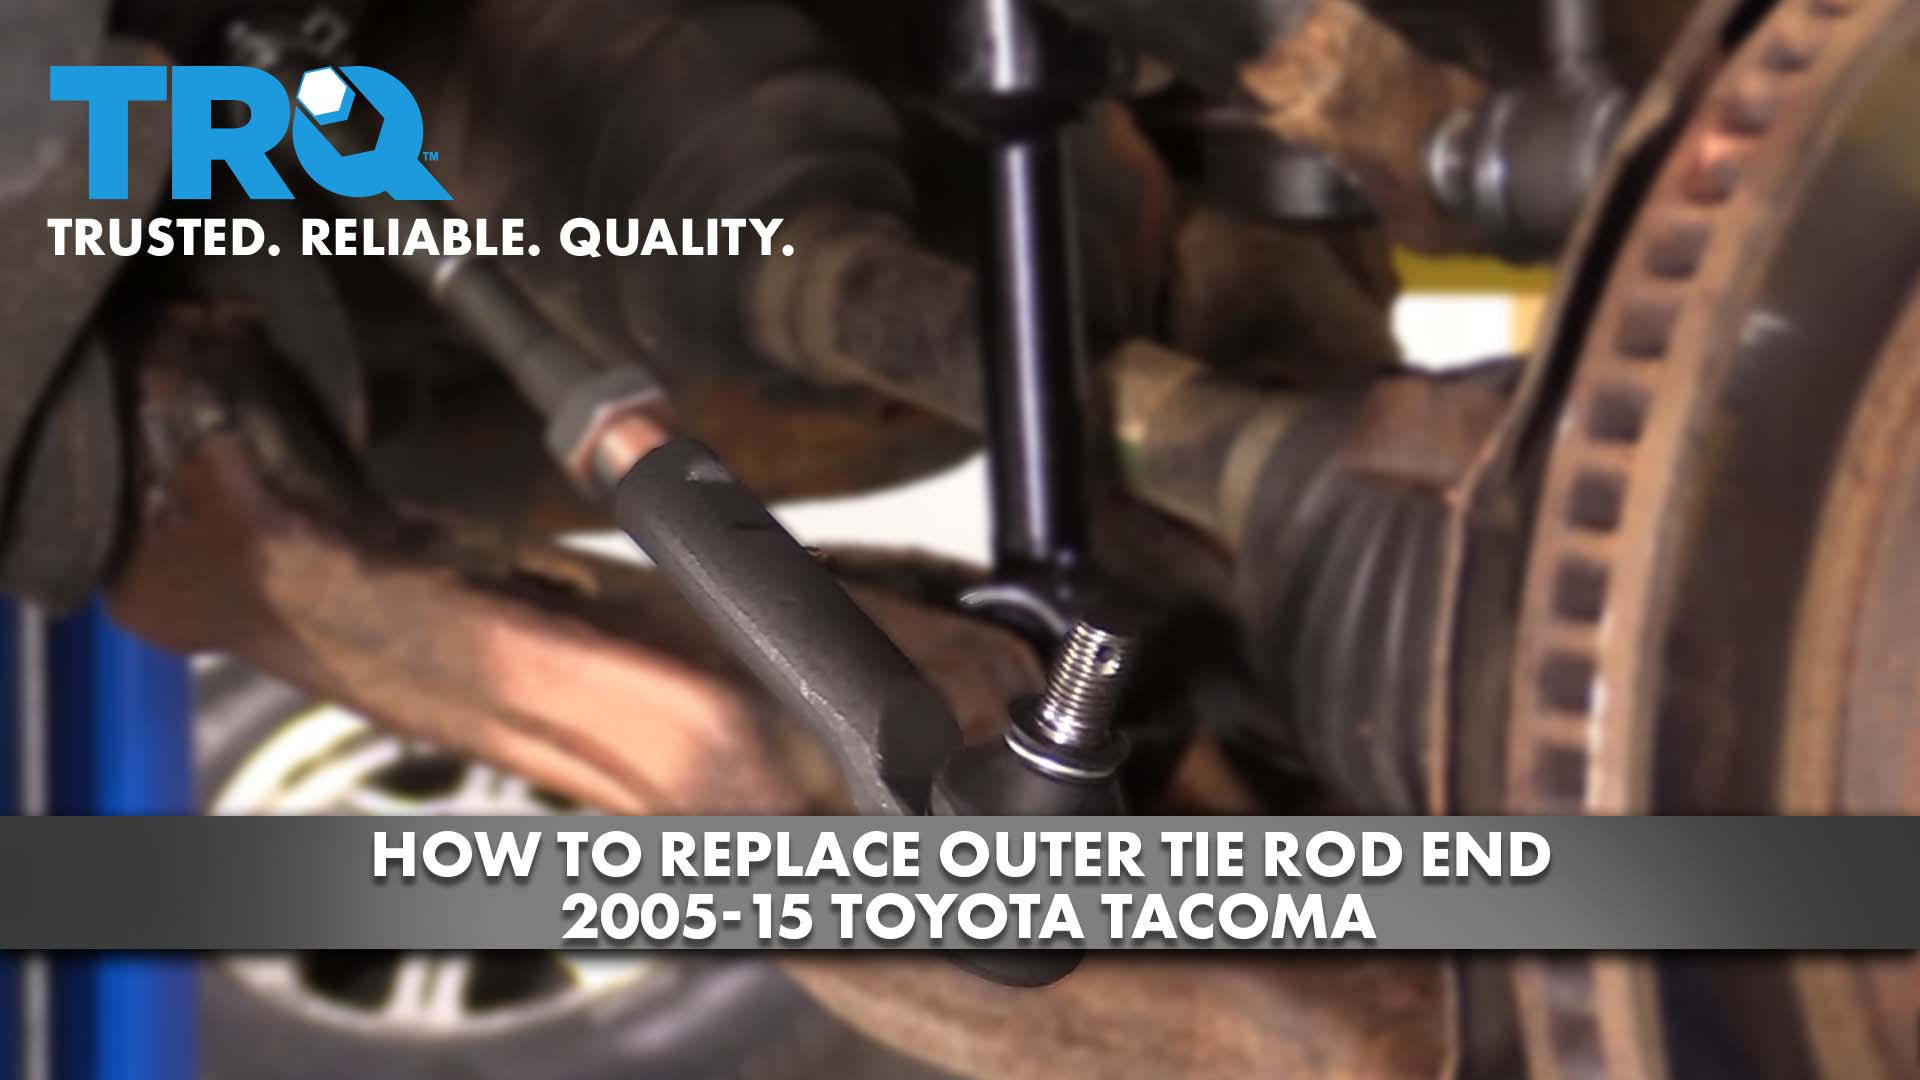 How to Replace Outer Tie Rod End 05-15 Toyota Tacoma